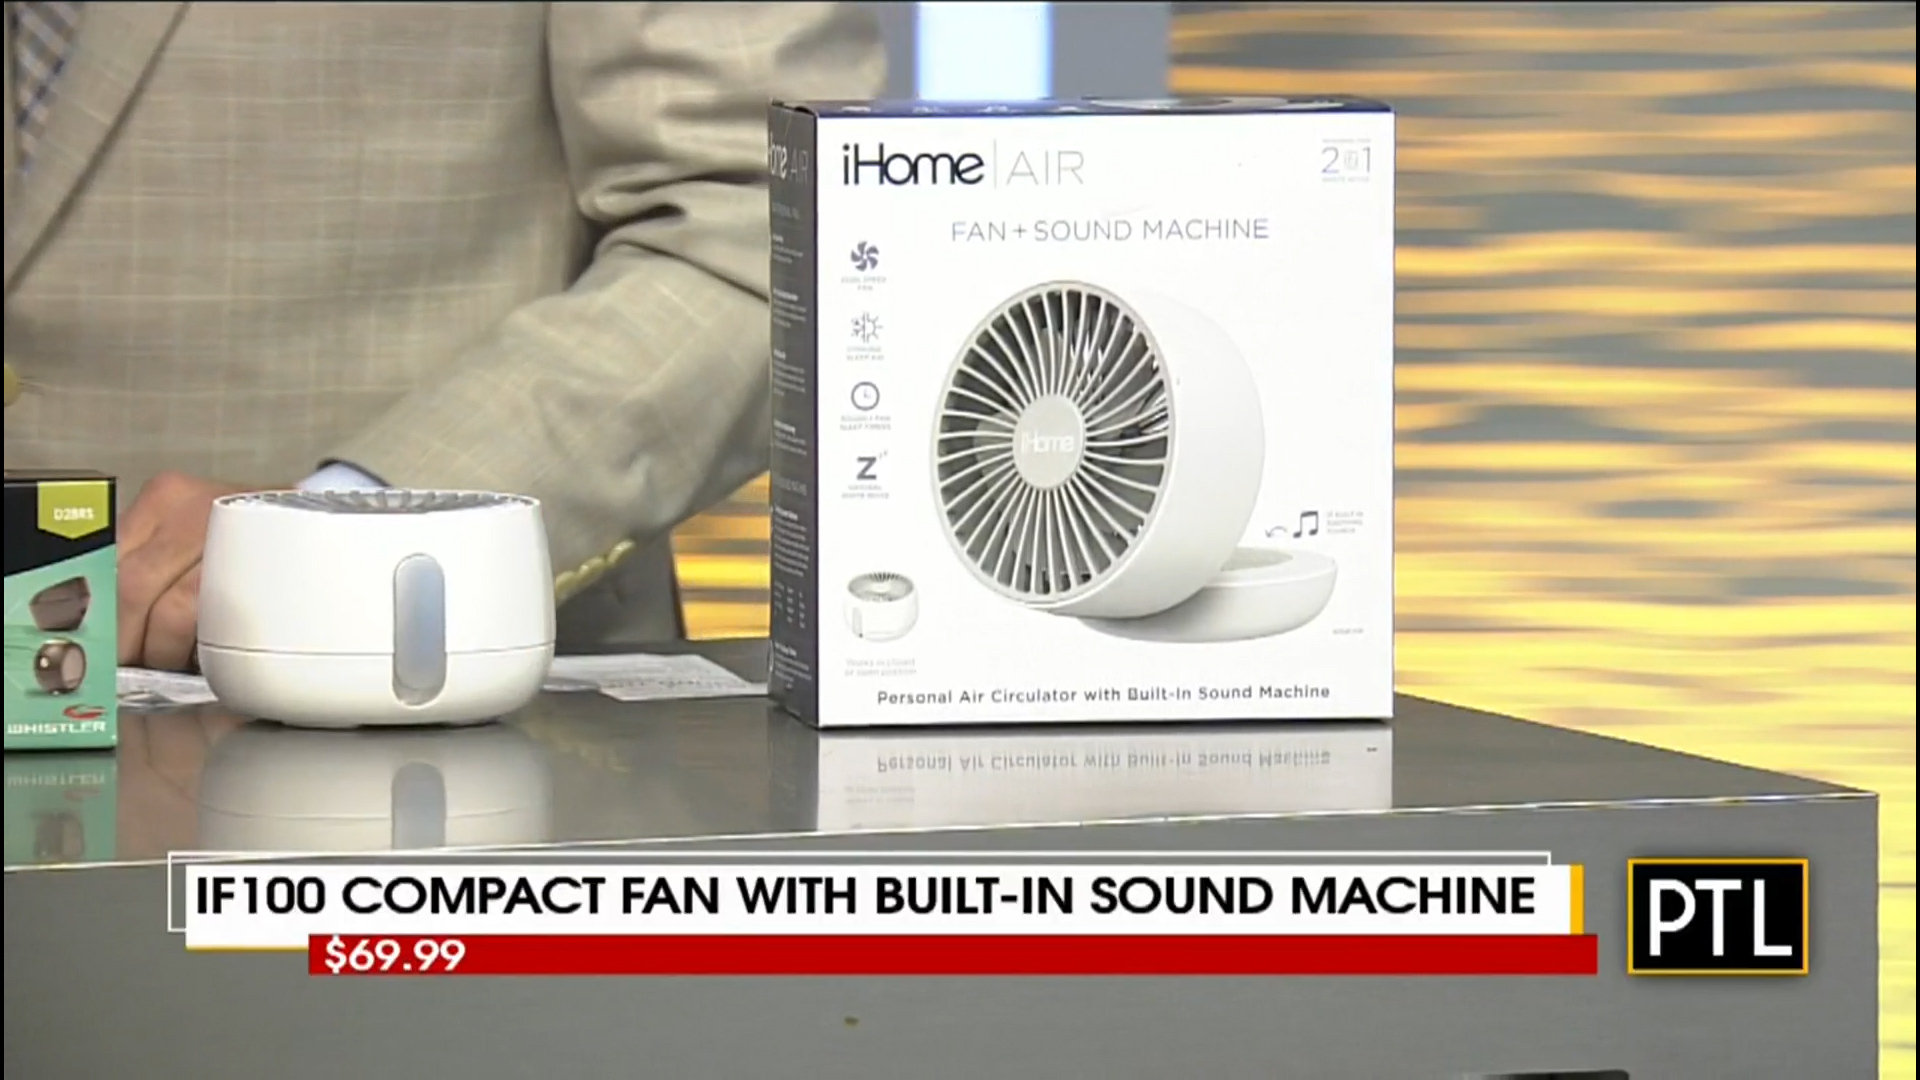 iF100 COMPACT FAN with BUILT-IN SOUND MACHINE - $69.99Shop Now